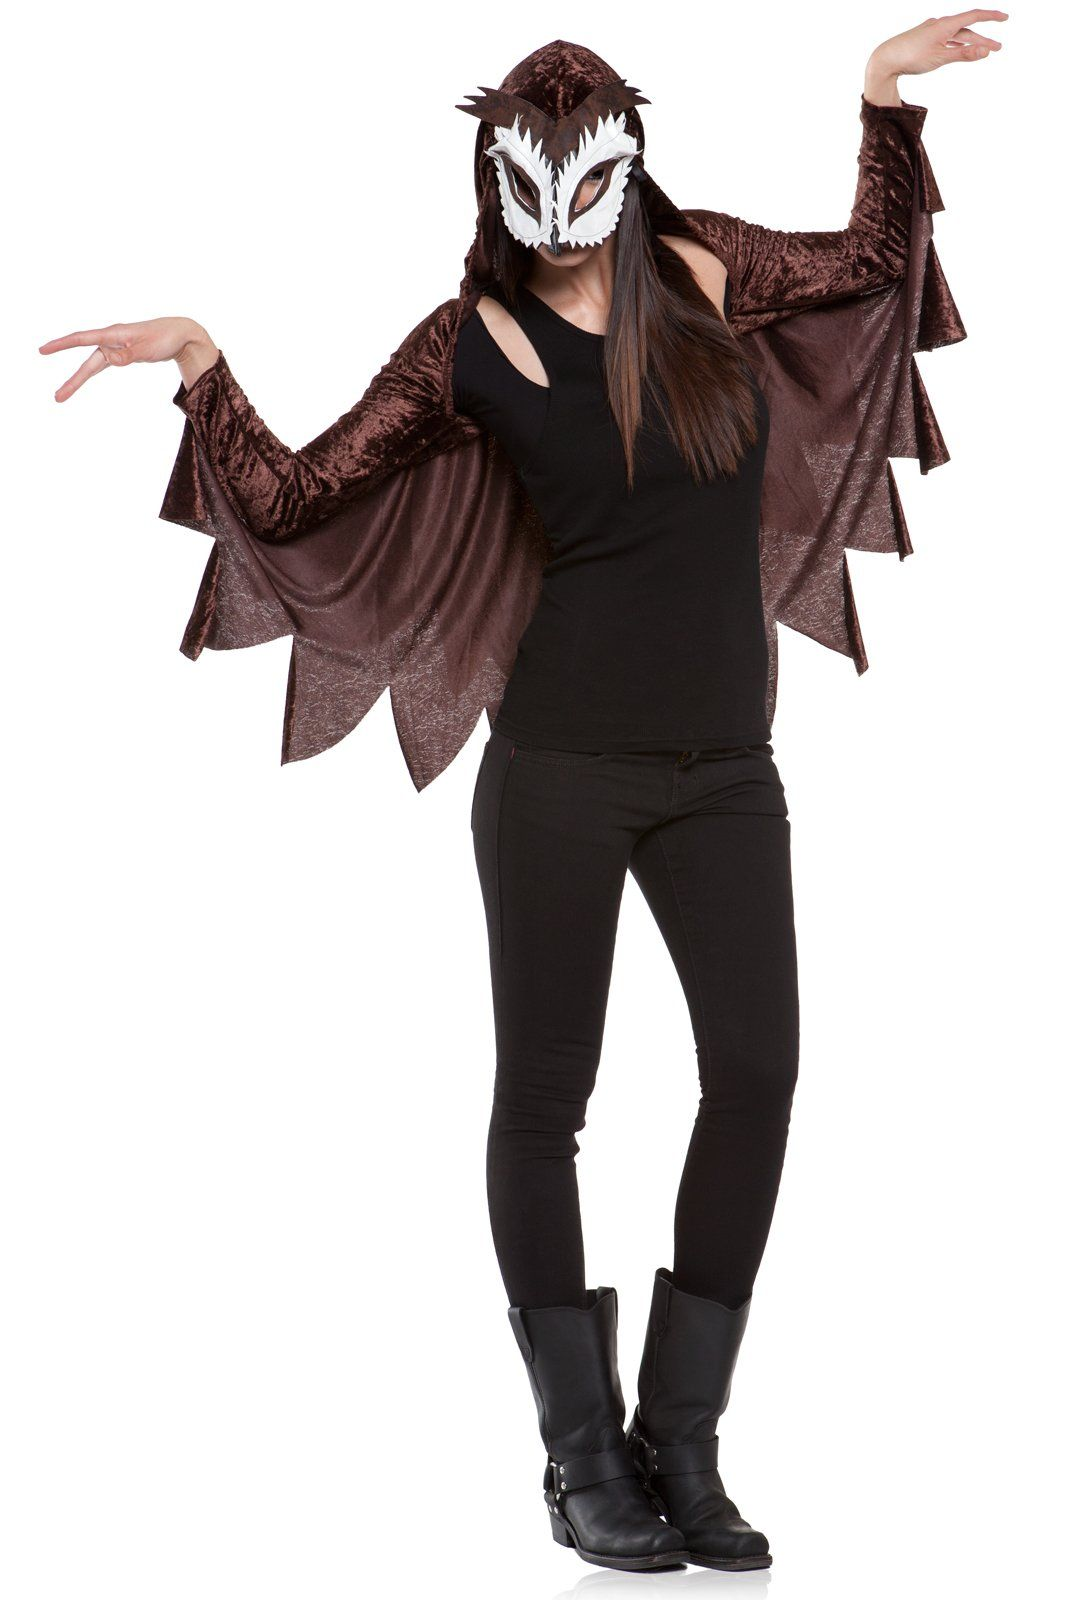 Owl Haunt You Adult Costume from BuyCostumes.com  sc 1 st  Pinterest & Owl Haunt You Adult Costume from BuyCostumes.com | Halloween ...